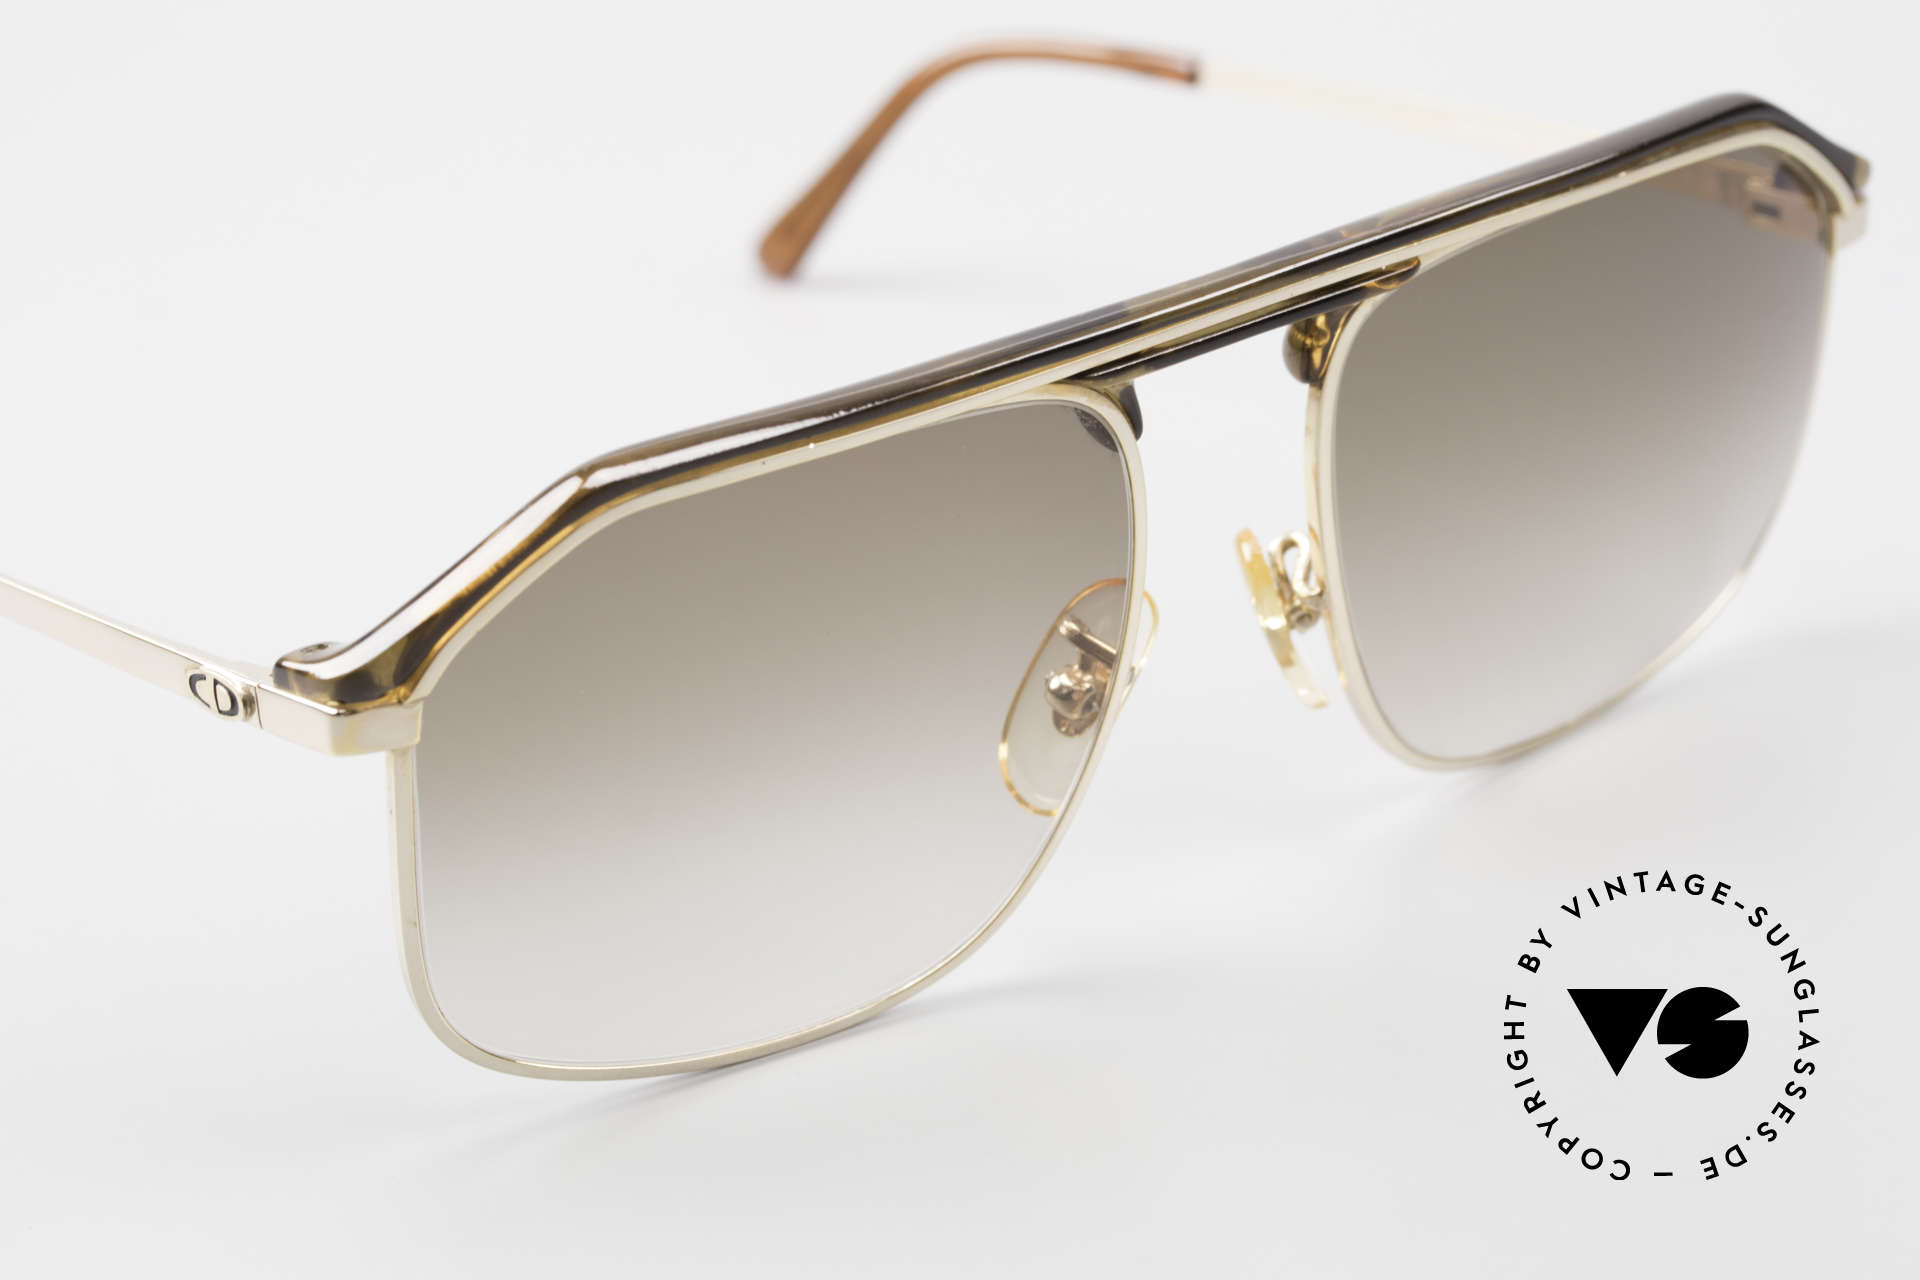 Christian Dior 2135A 1980's Dior Monsieur Series, never worn (like all our vintage sunglasses by Dior), Made for Men